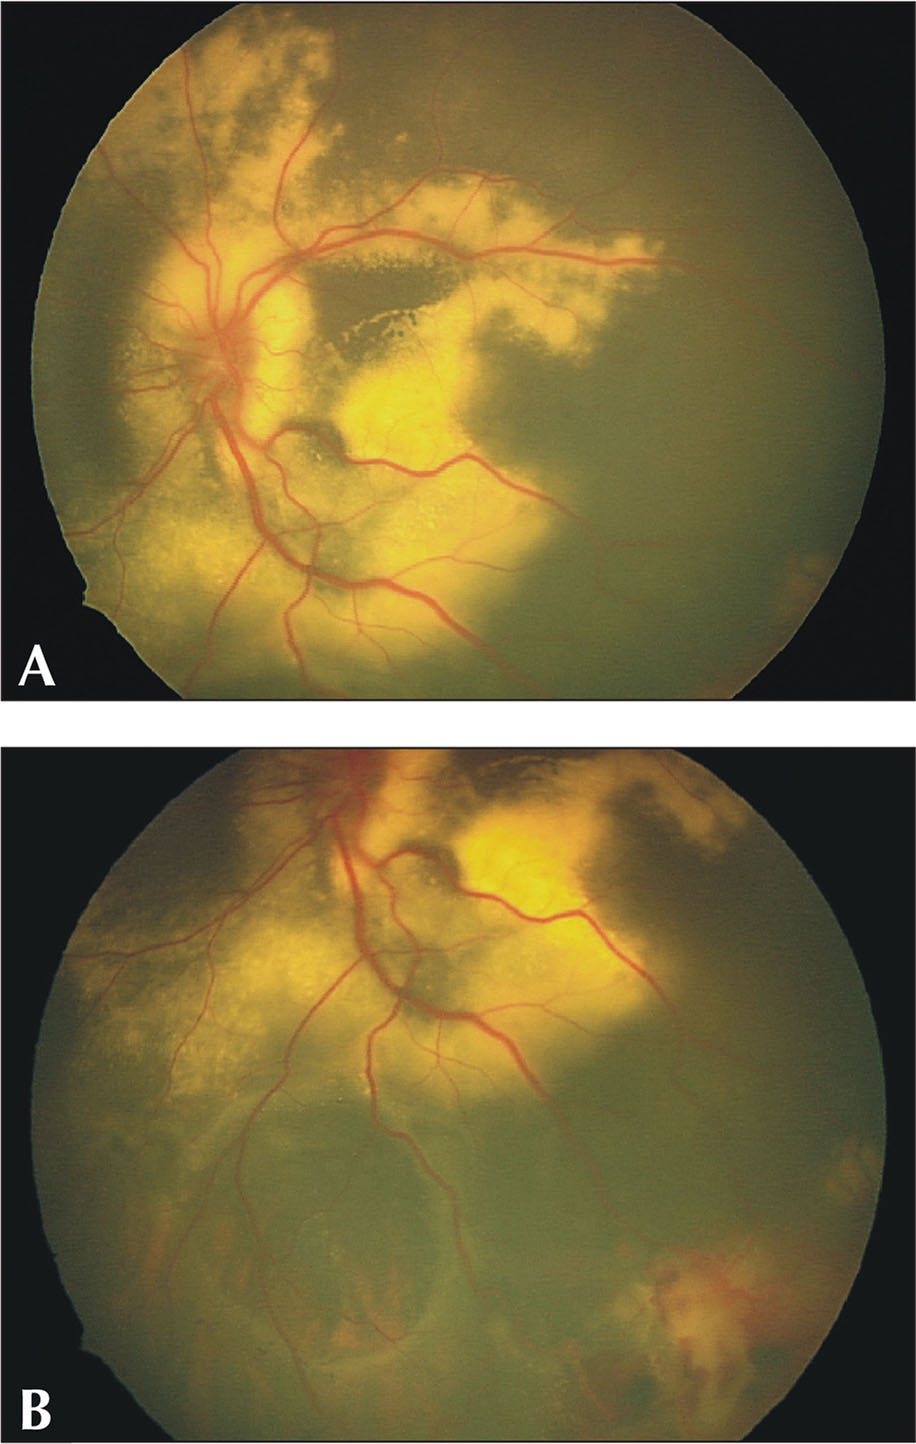 Initial presentation with (A) an extensive exudative retinal detachment and (B) early macrocyst formation.